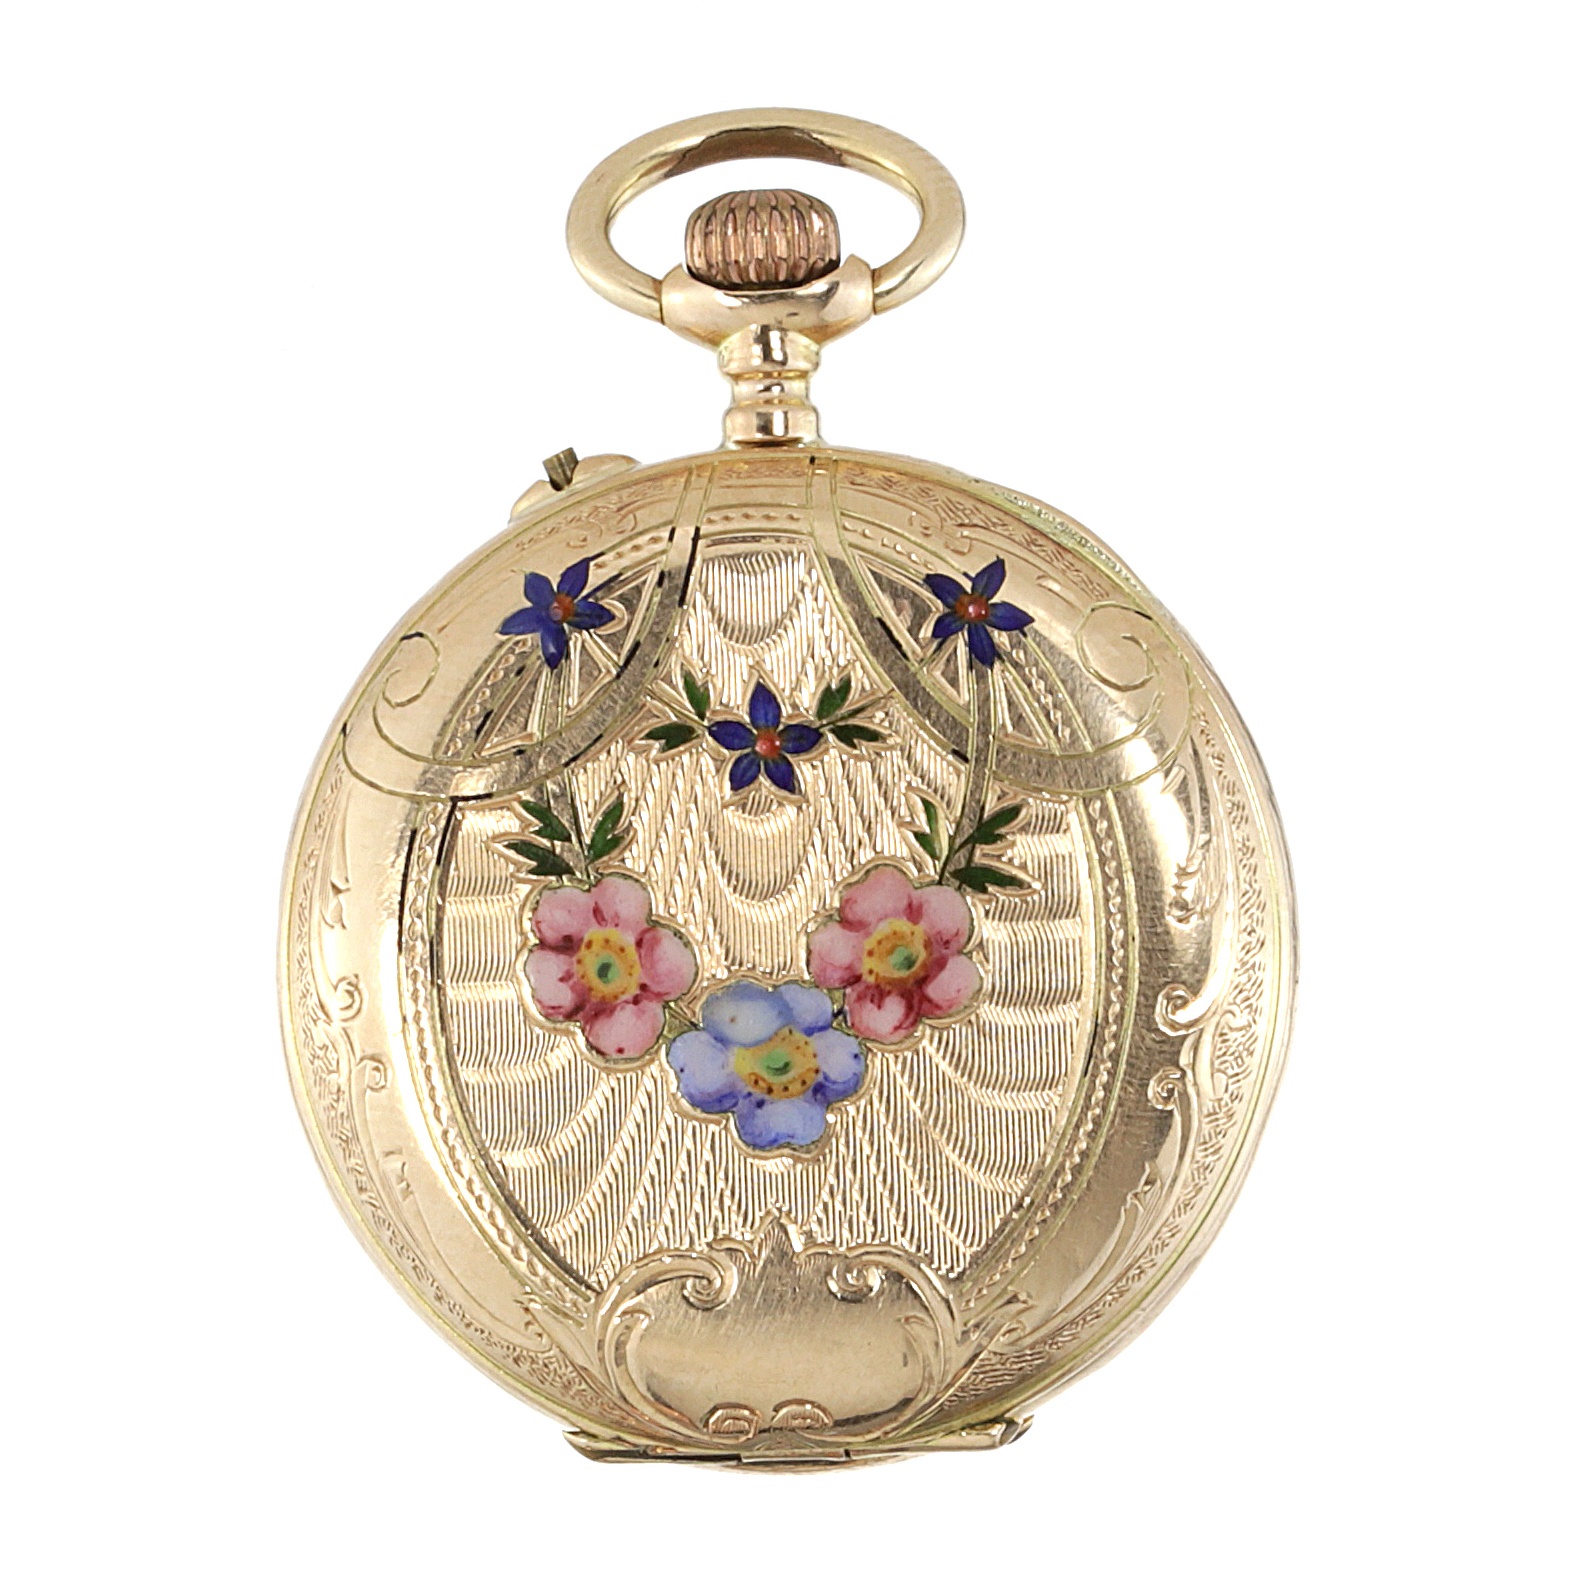 Los 418 - AN ENAMEL POCKET WATCH in high carat yellow gold, the circular case with engraved foliate